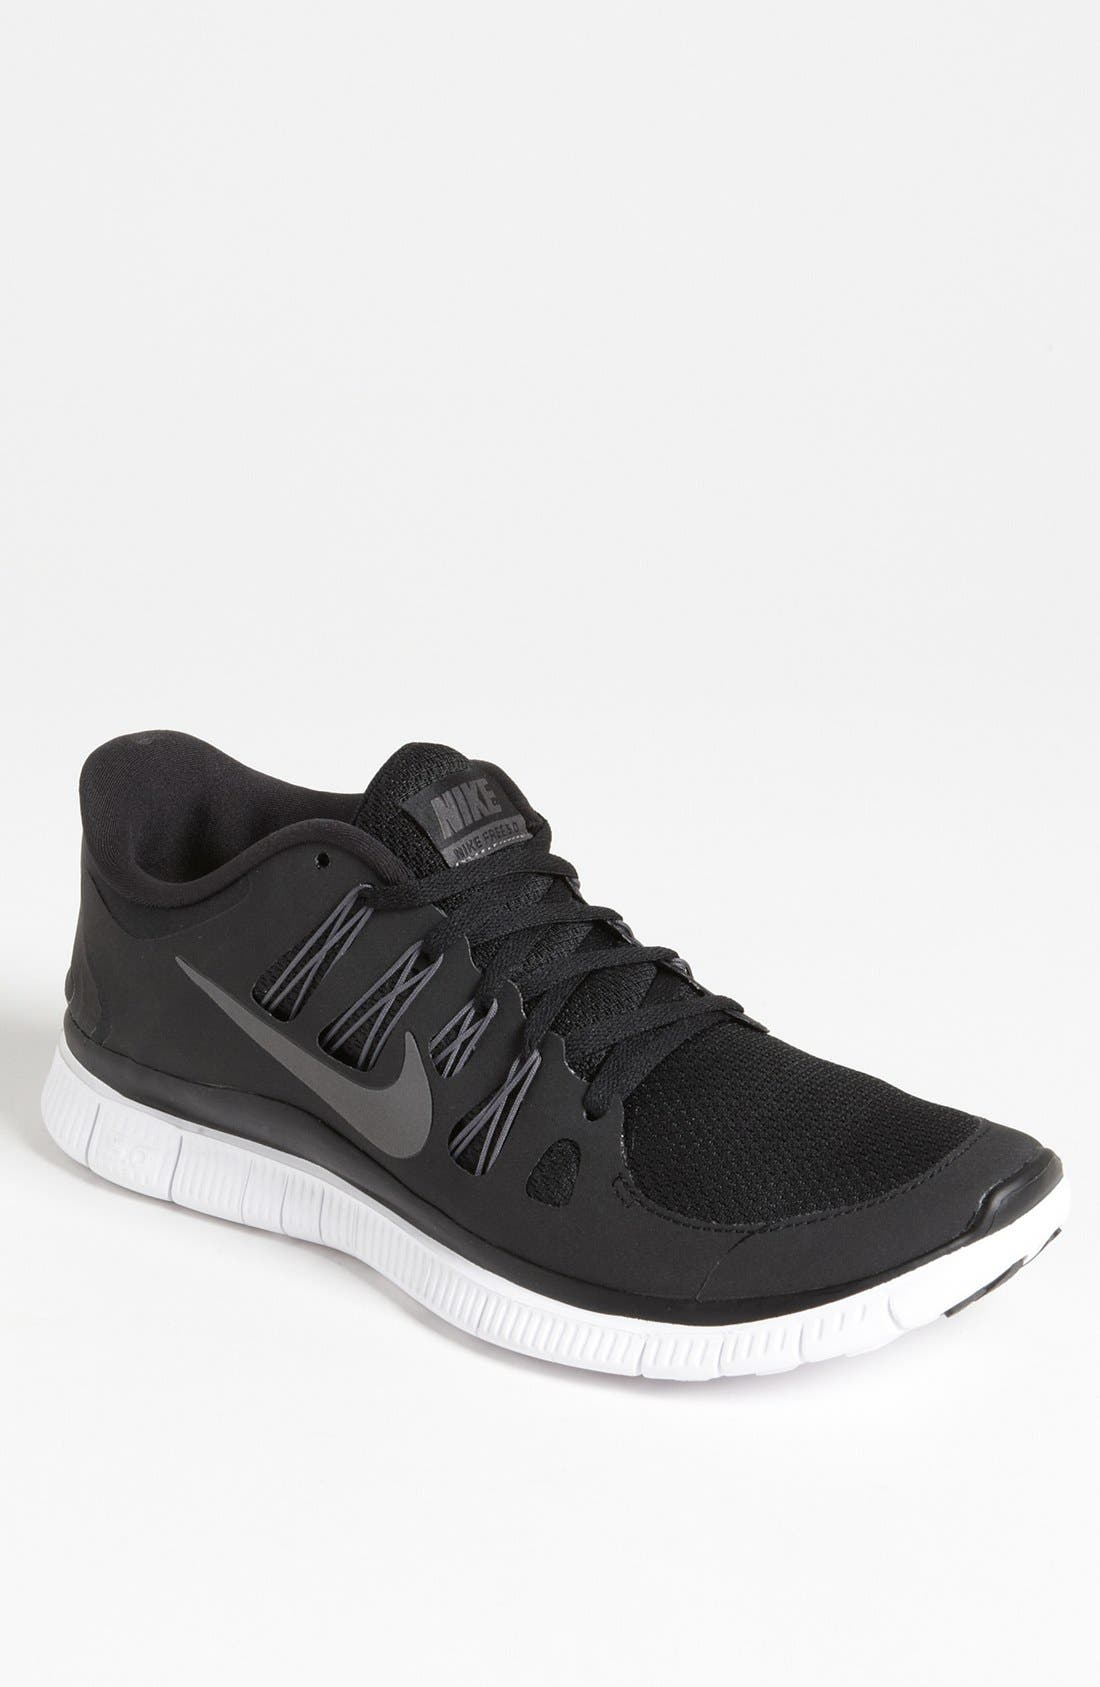 Alternate Image 1 Selected - Nike 'Free 5.0+' Running Shoe (Men)